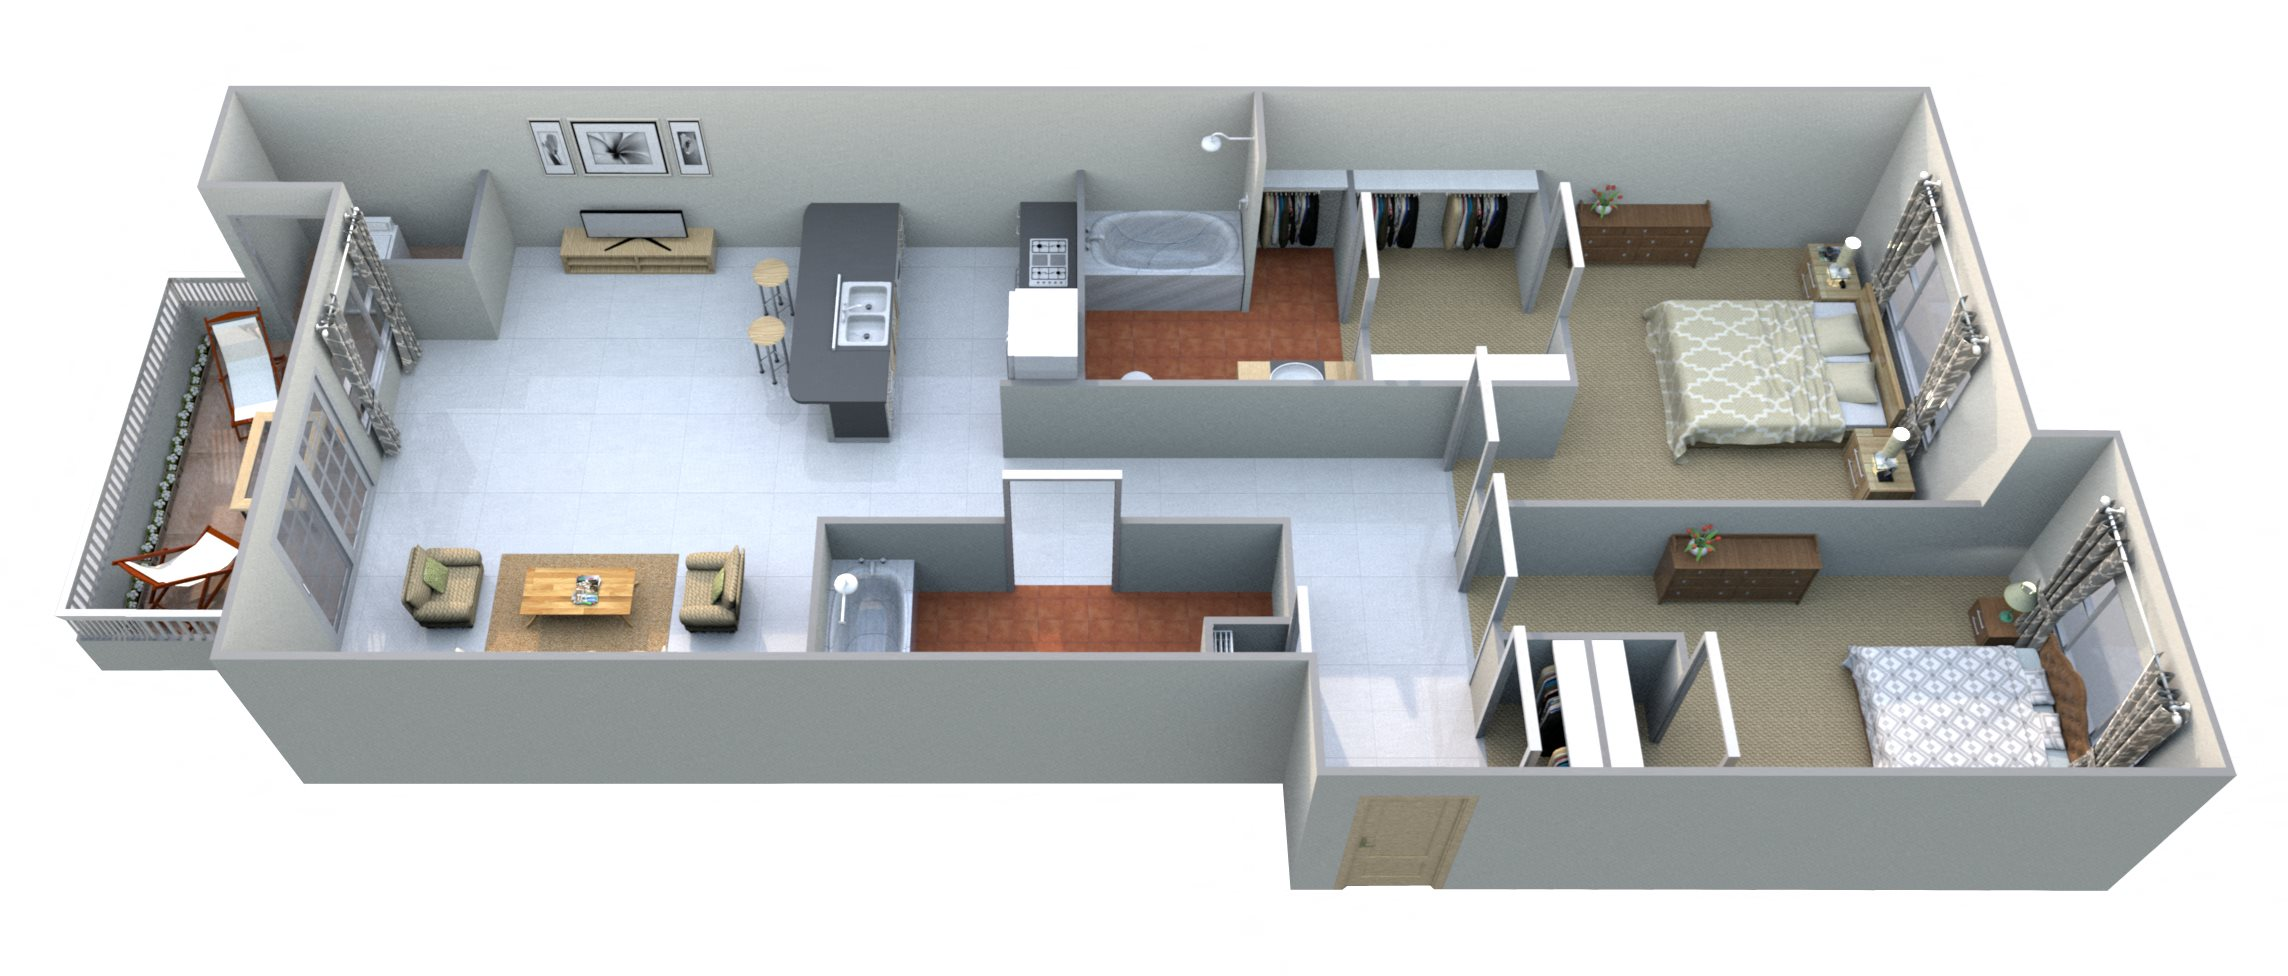 Dome Peak Floor Plan 9